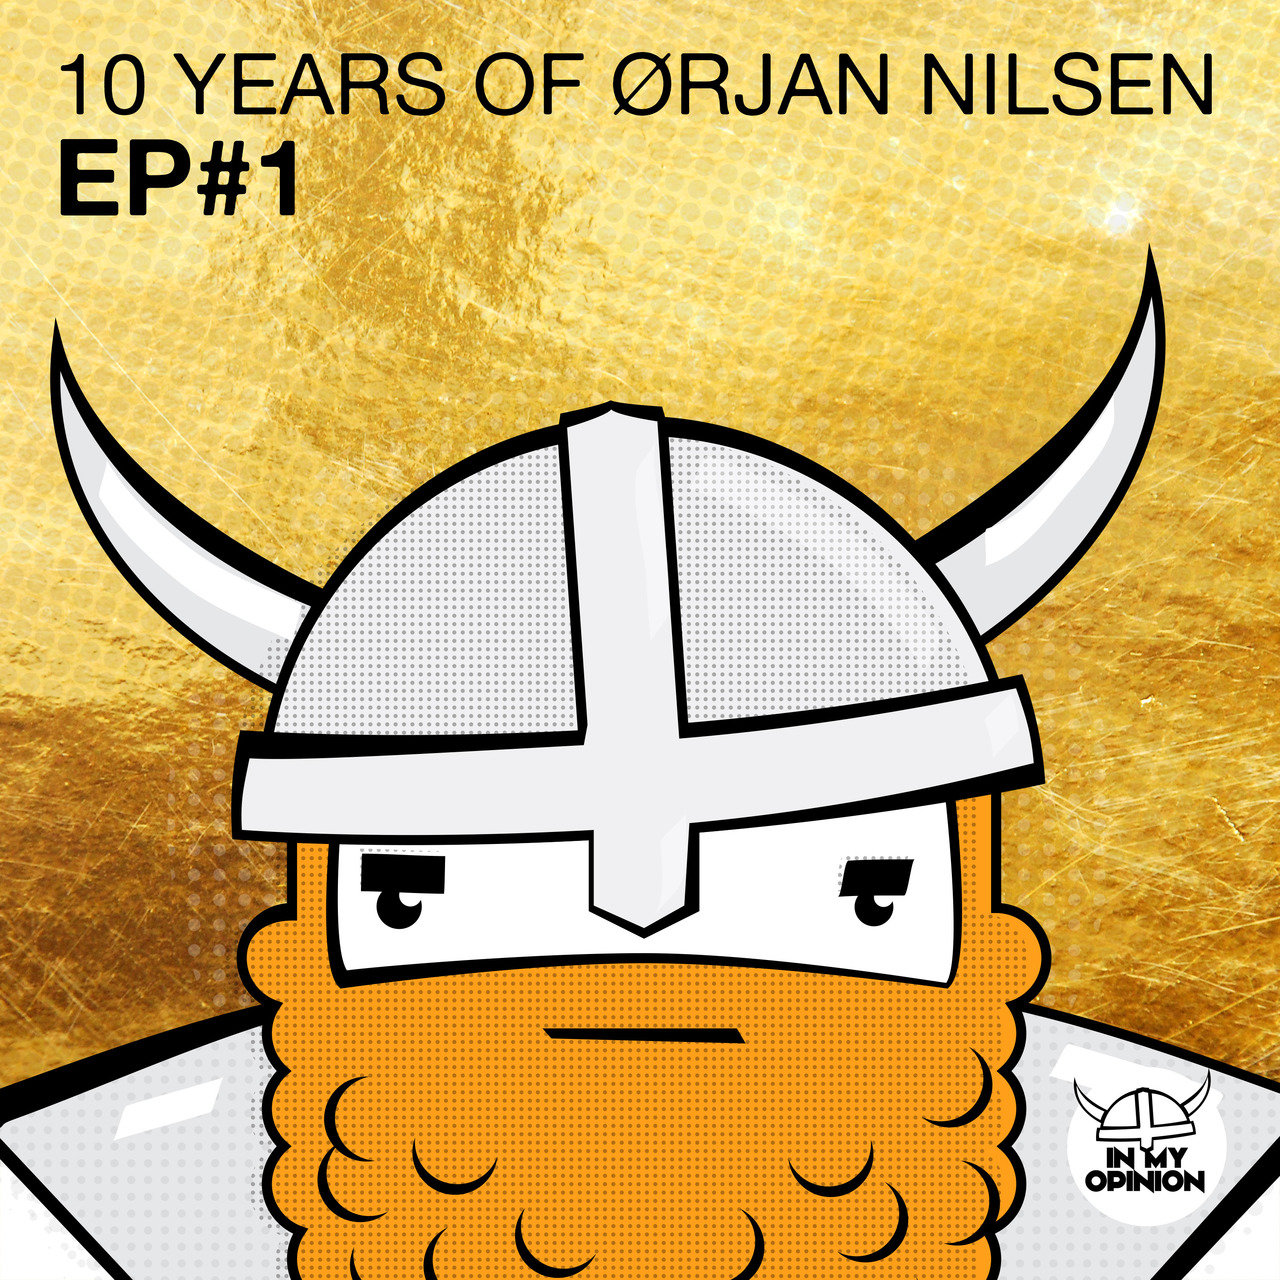 10 Years Of Orjan Nilsen EP#1